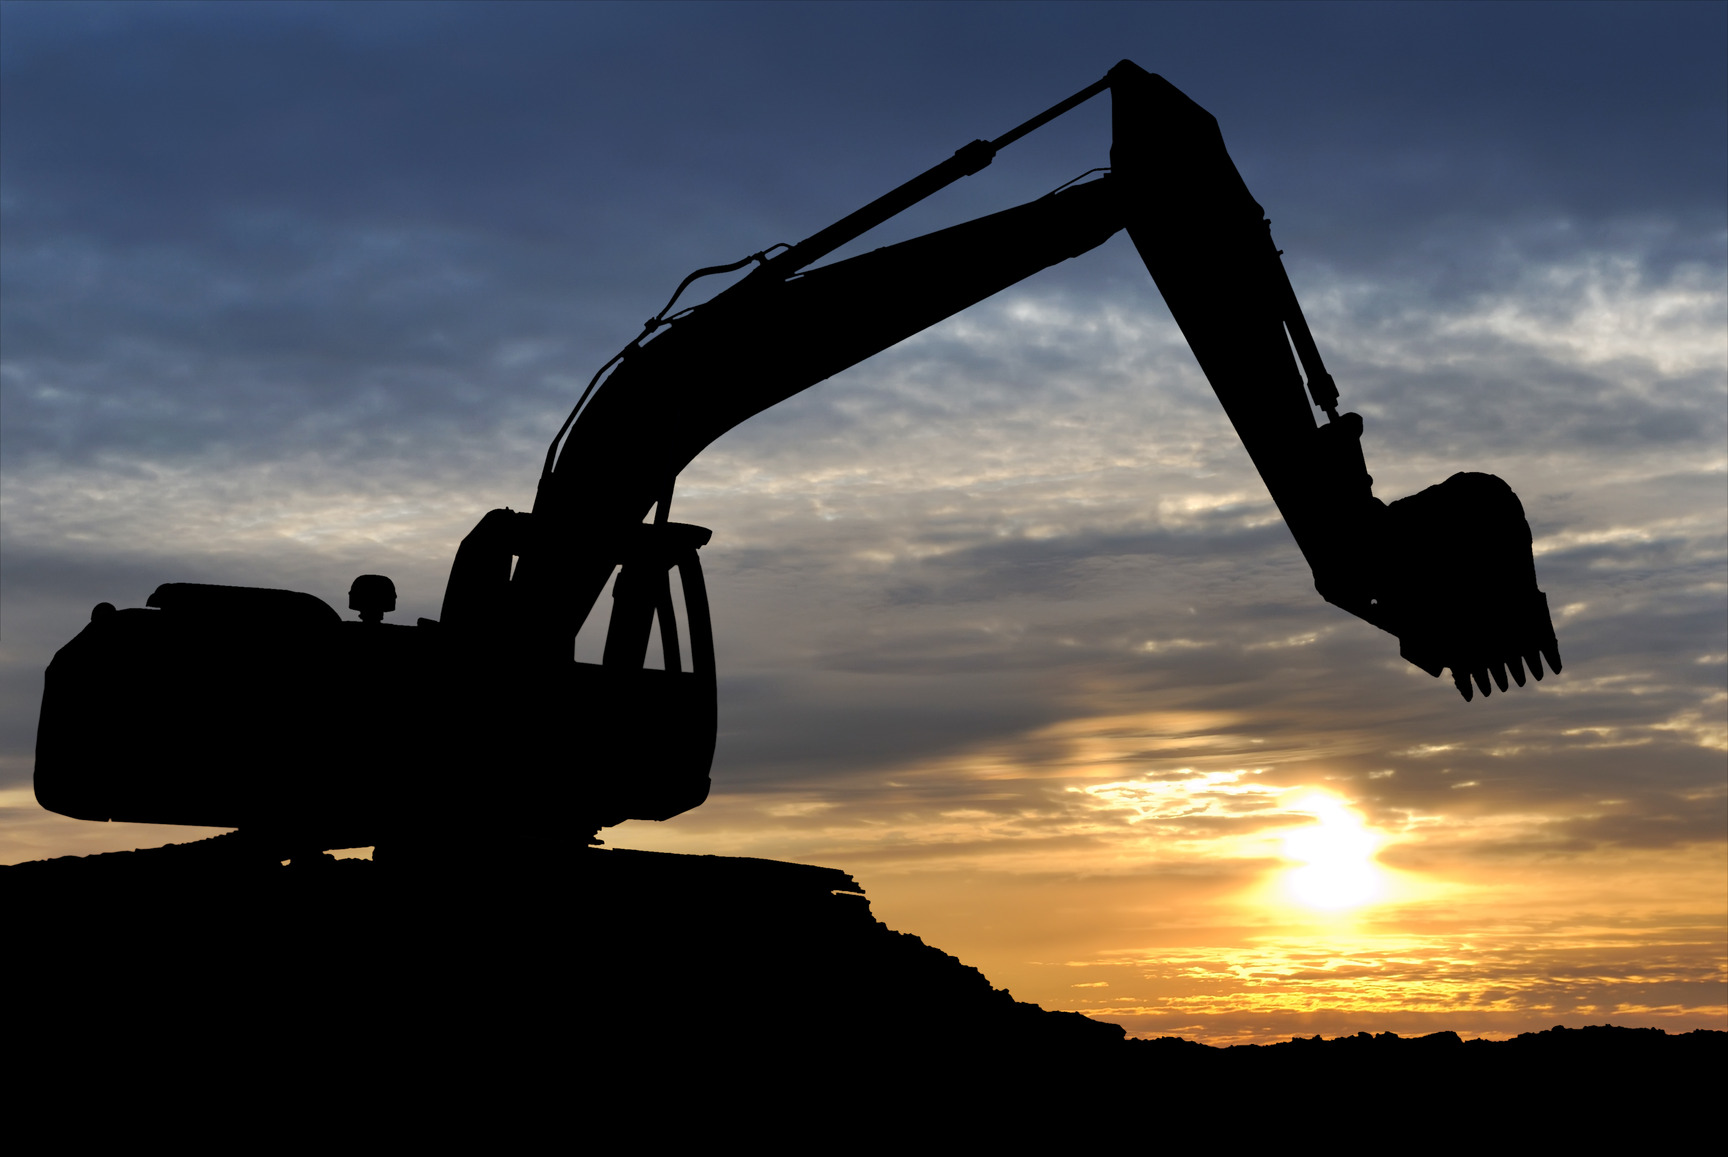 photodune-1304277-loader-excavator-over-sunset-m